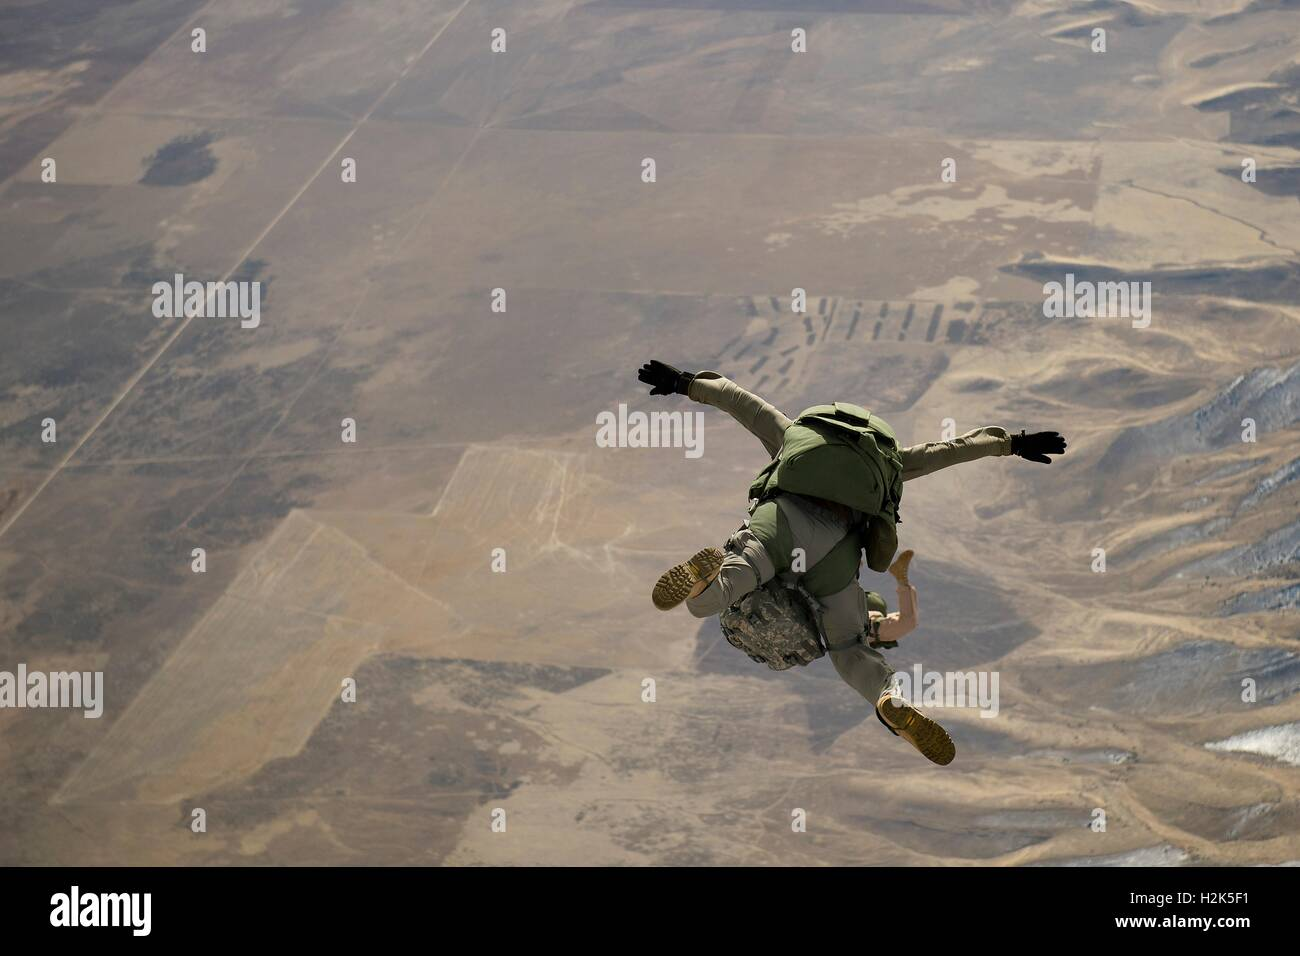 U.S. Army special operation soldiers free fall during a HALO parachute training jump February 22, 2012 near Fairfield, - Stock Image